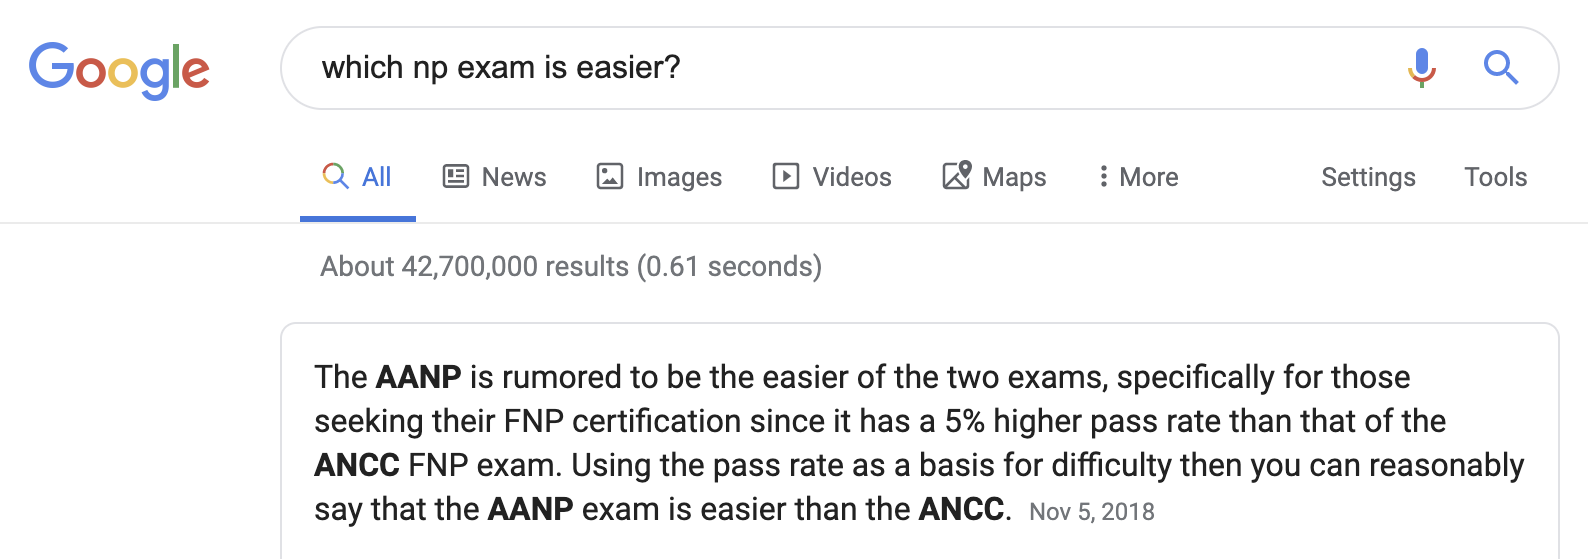 Which fnp exam is easier?